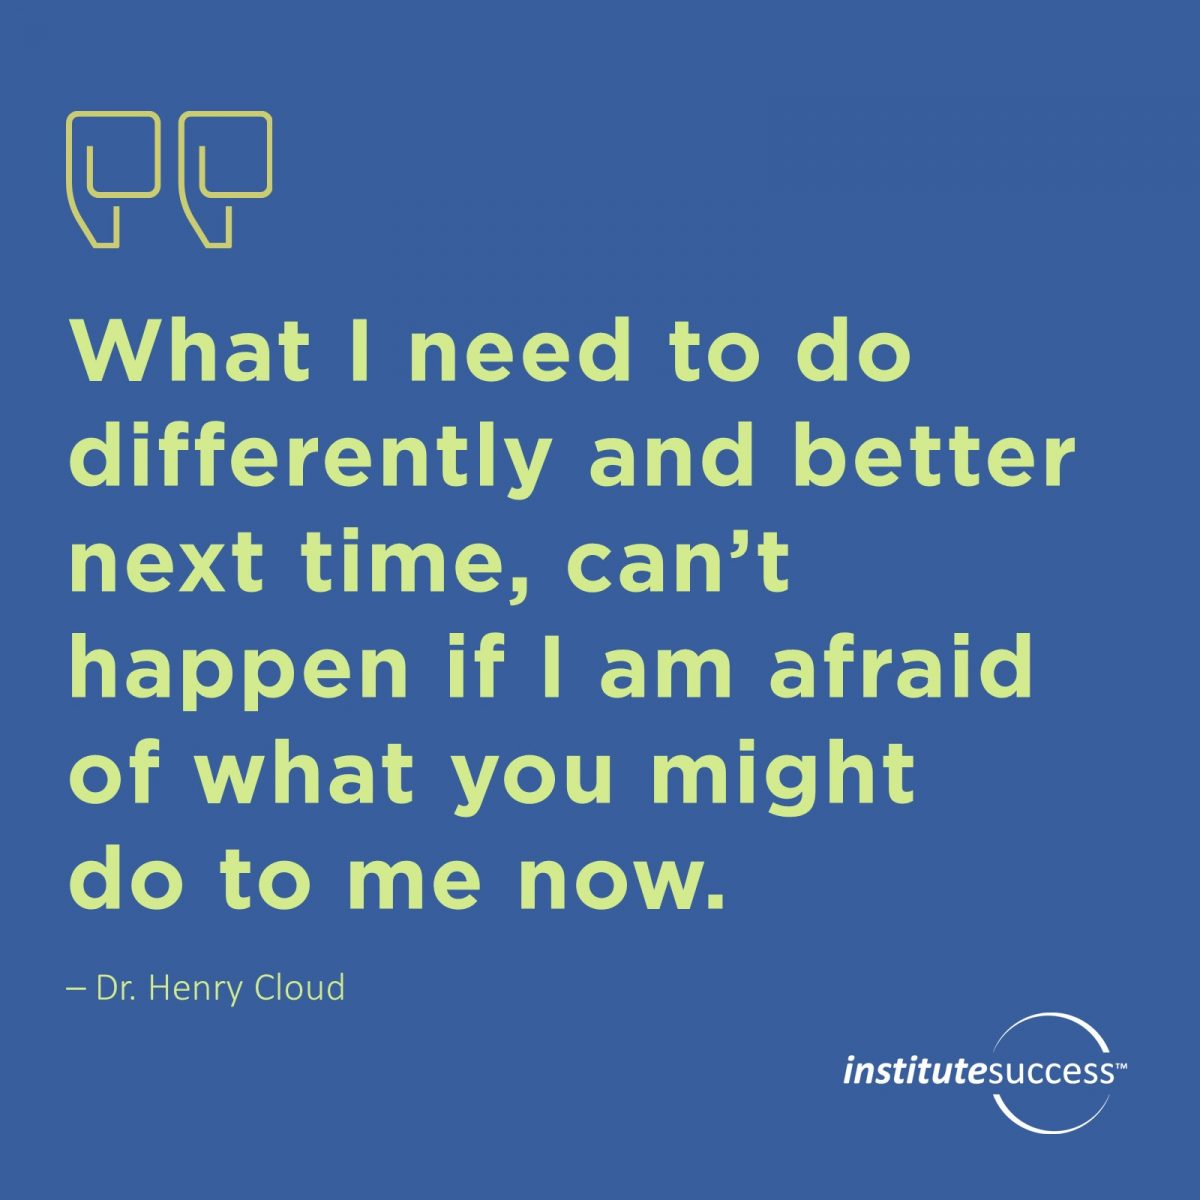 What I need to do differently and better next time, can't happen if I am afraid of what you might do to me now. Dr. Henry Cloud